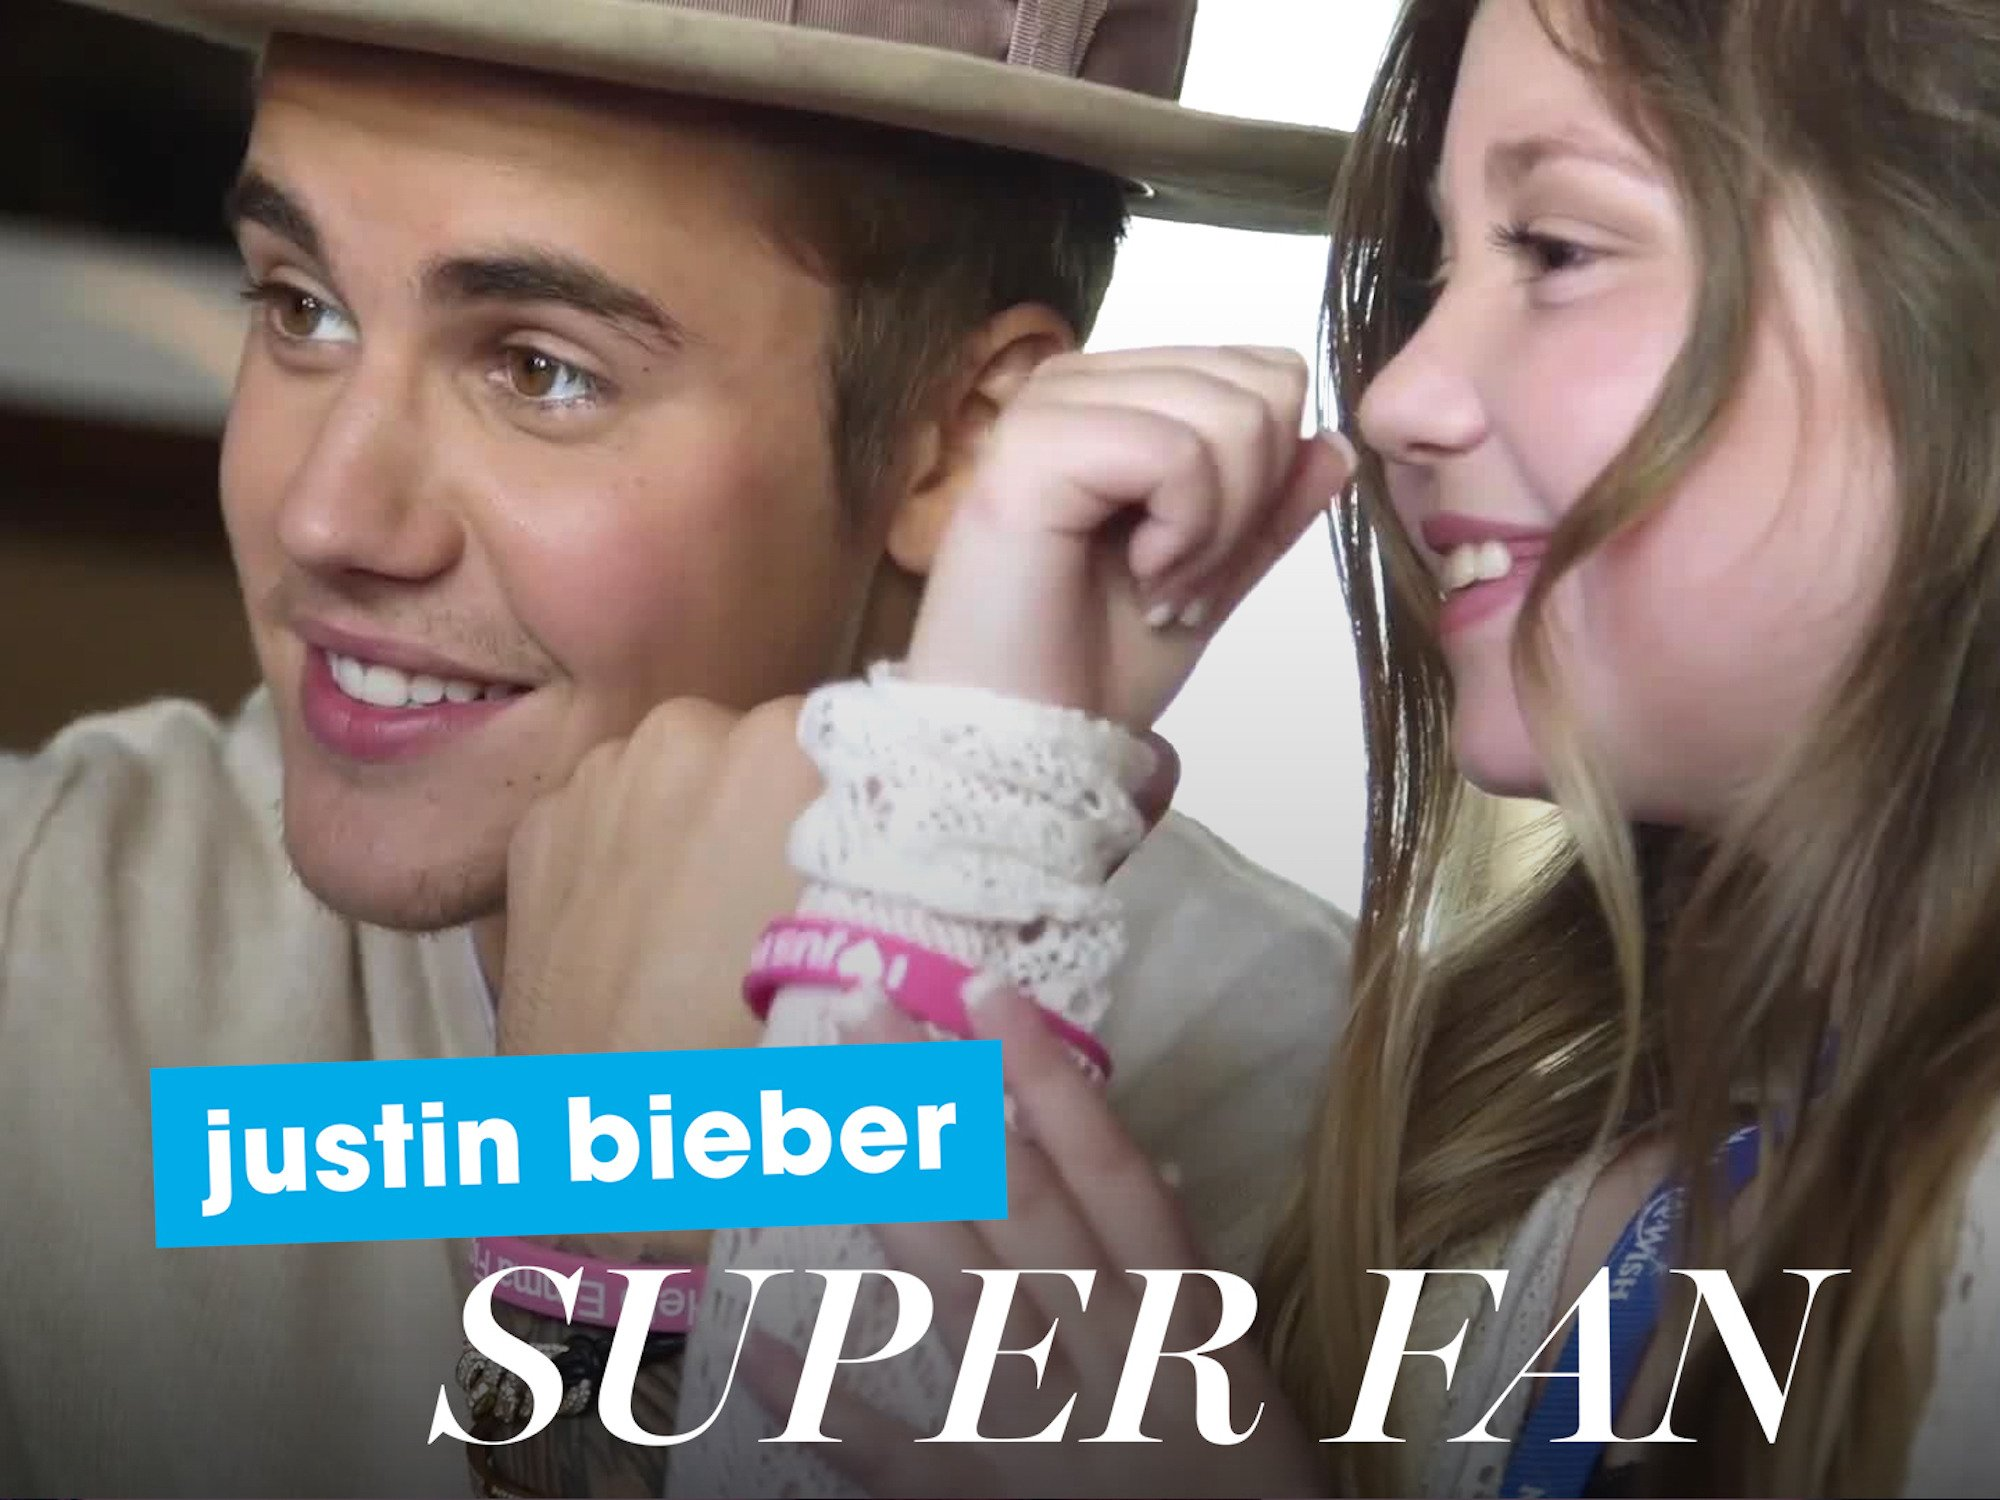 Clip: Justin Bieber Super Fan - Season 1